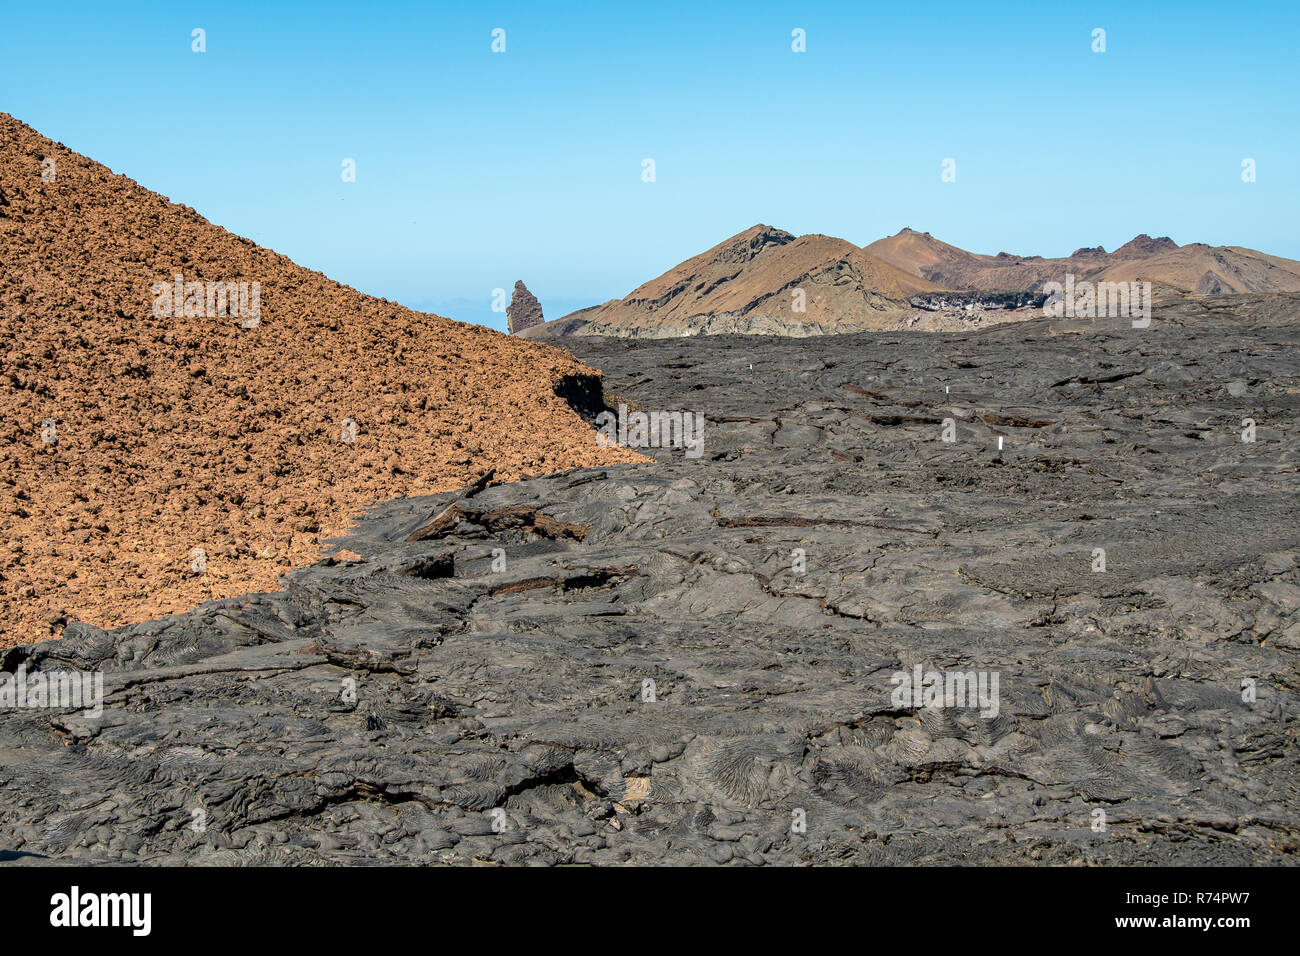 The gray lava flow of the Santiago island in the Galapagos contrasts with the red of the rocks - Stock Image